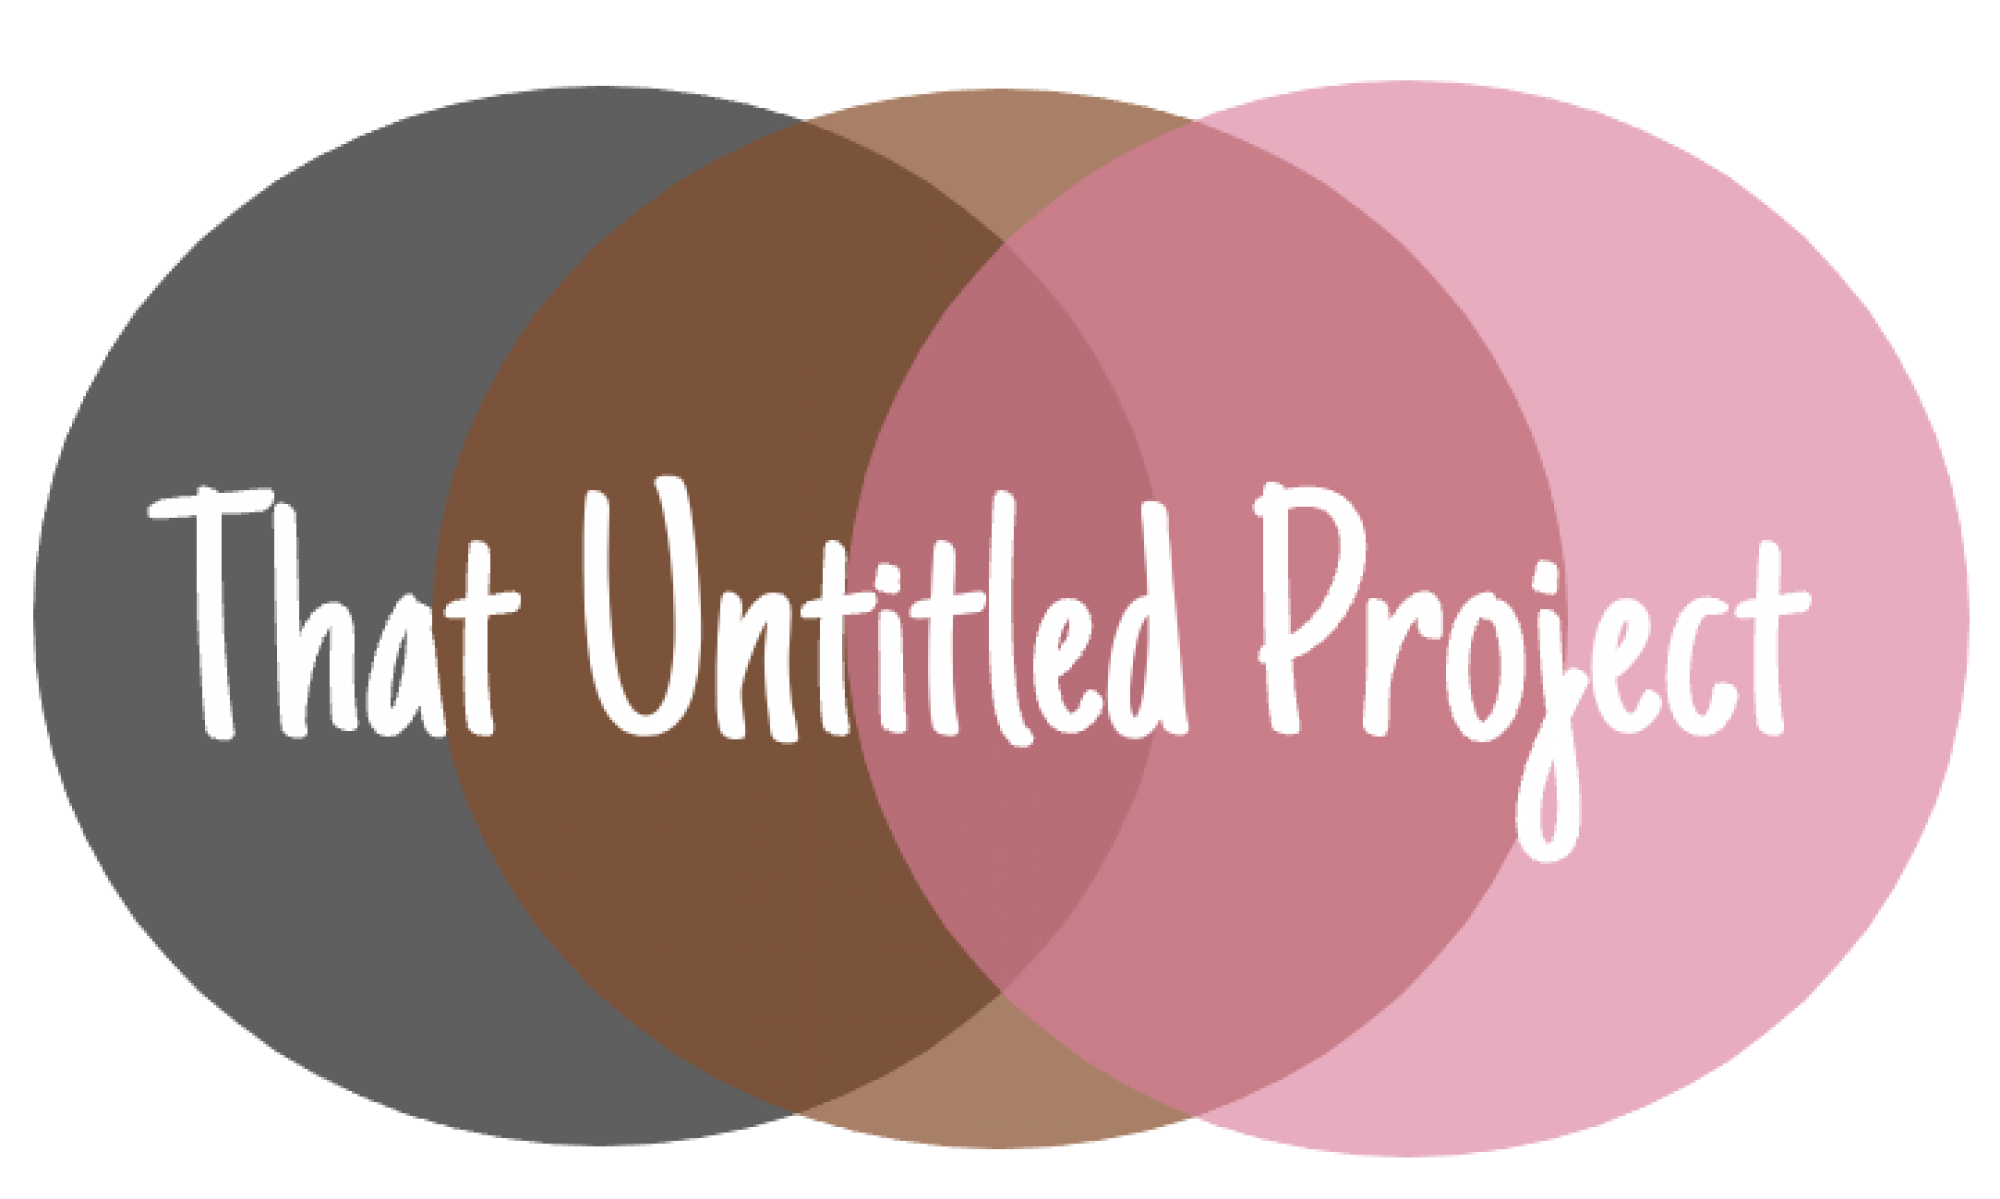 That Untitled Project